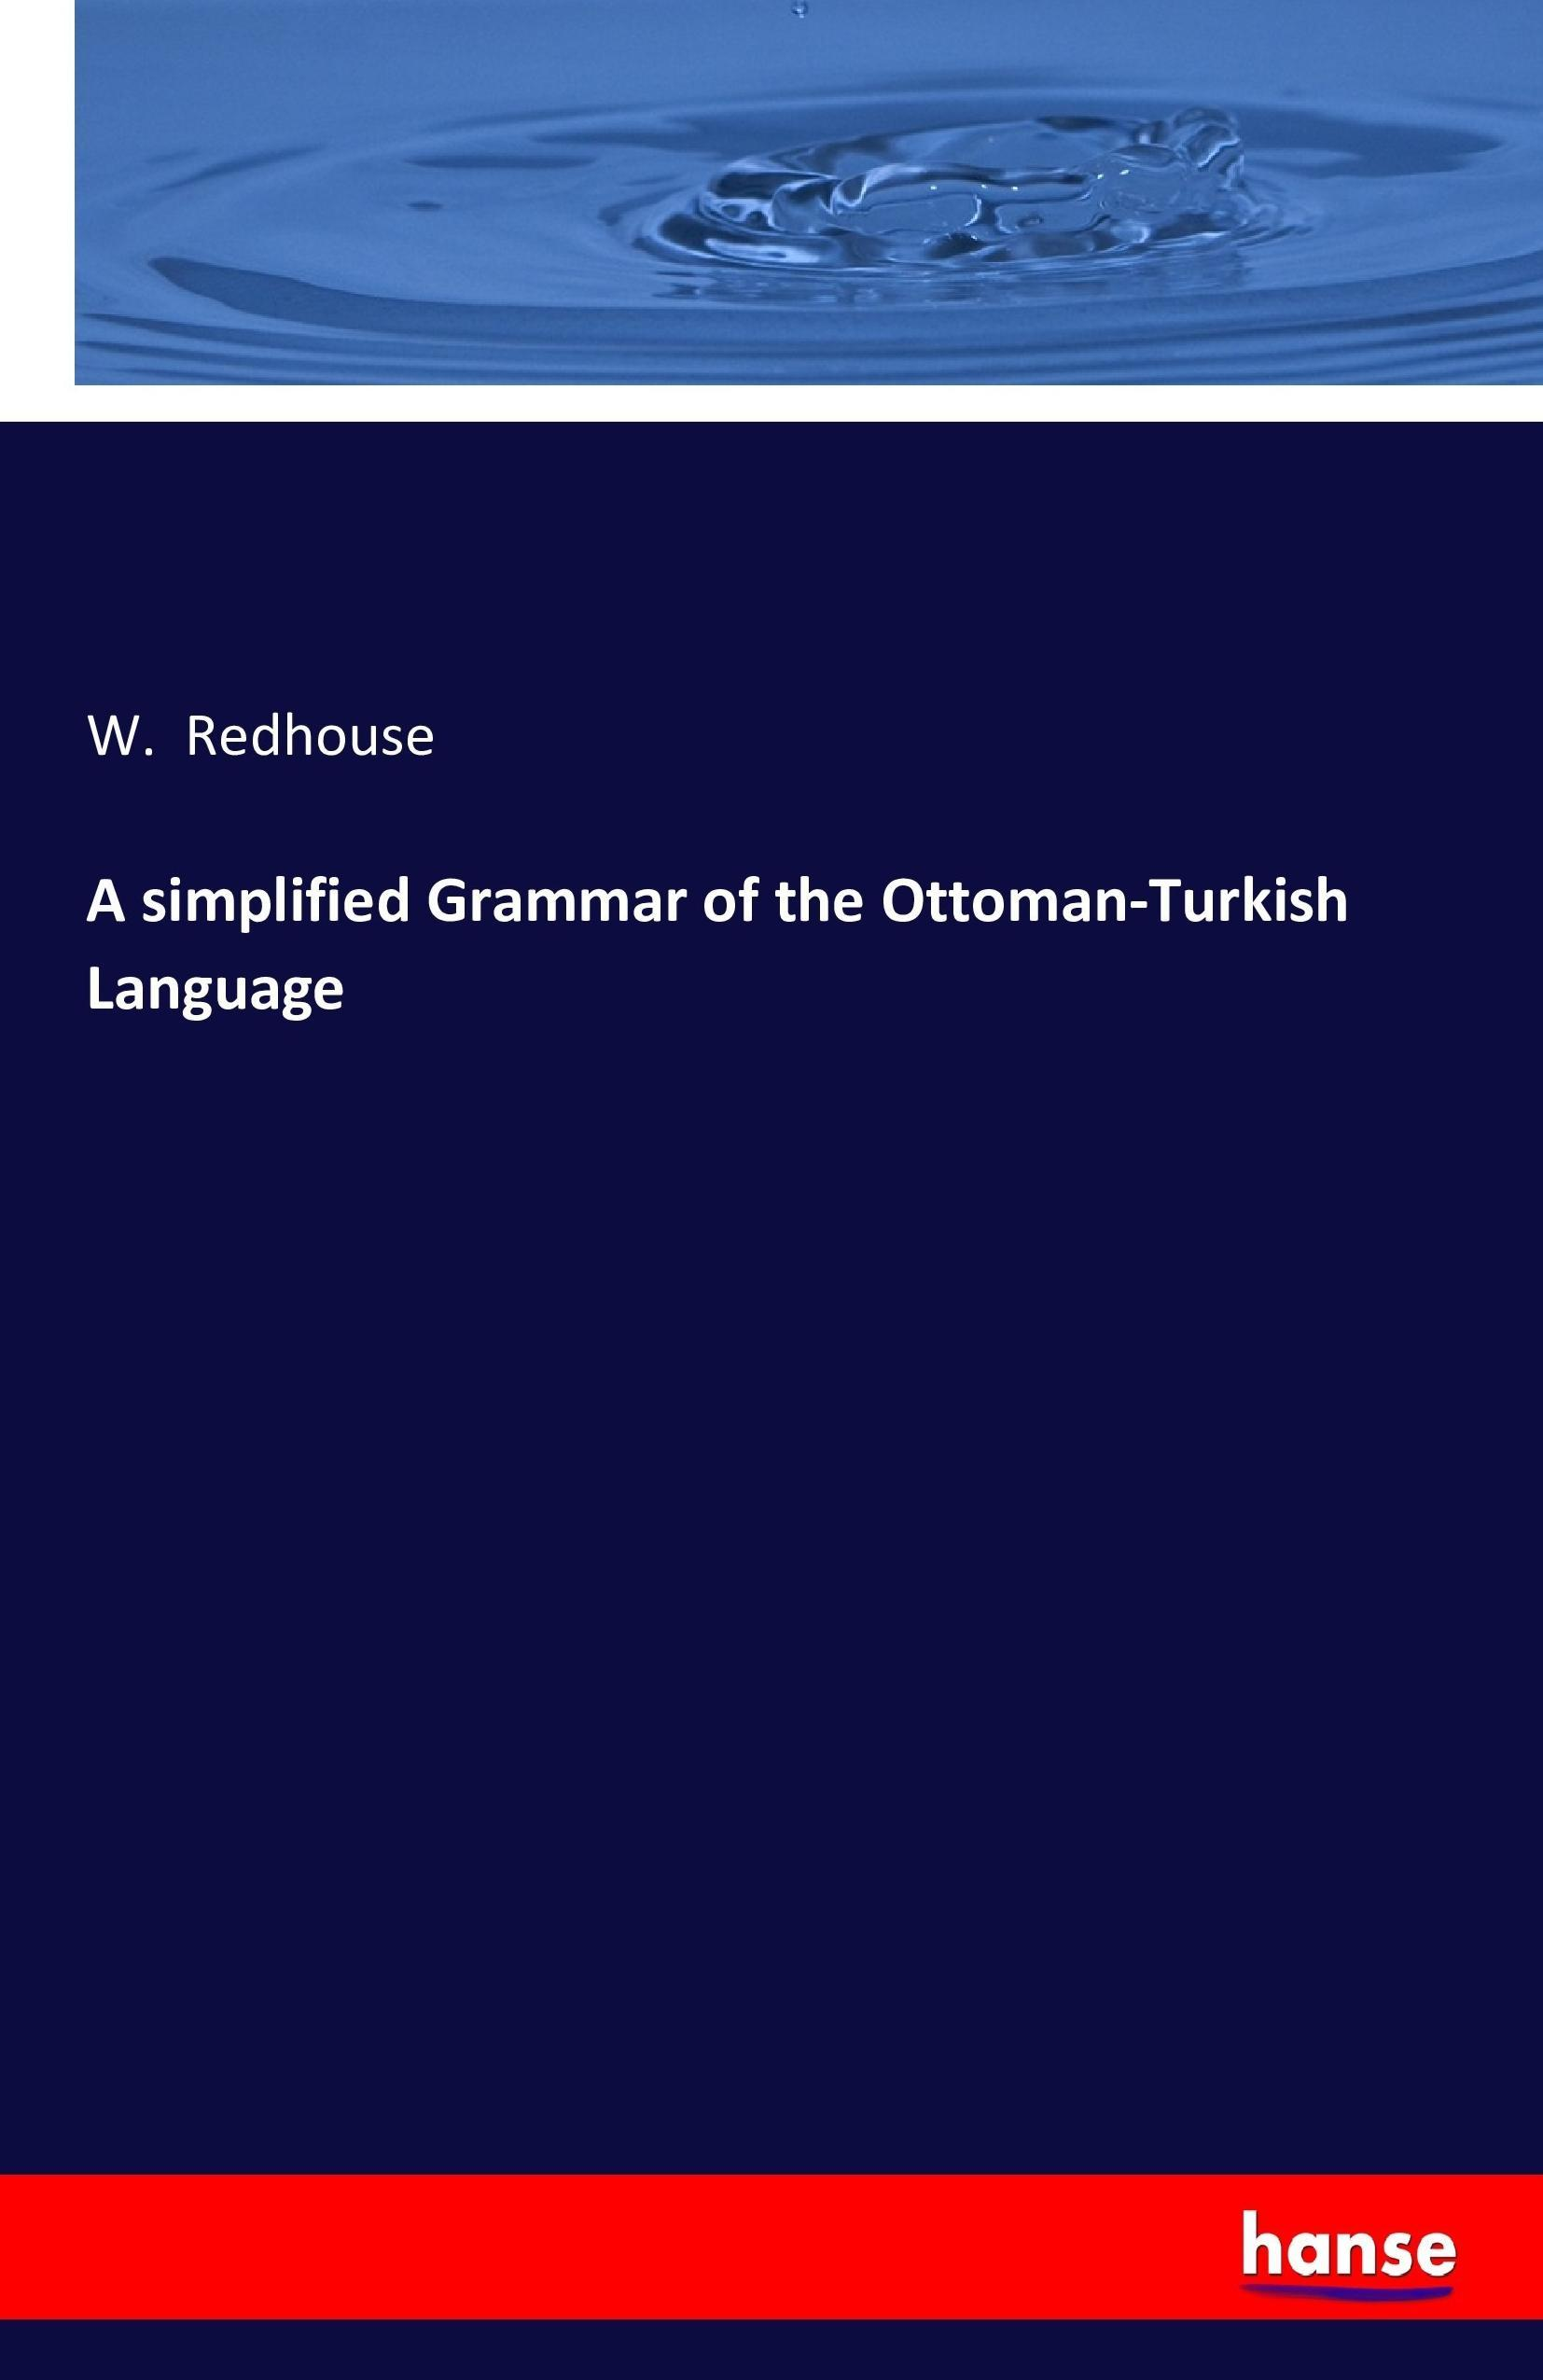 A simplified Grammar of the Ottoman-Turkish Language - W. Re ... 9783743316119